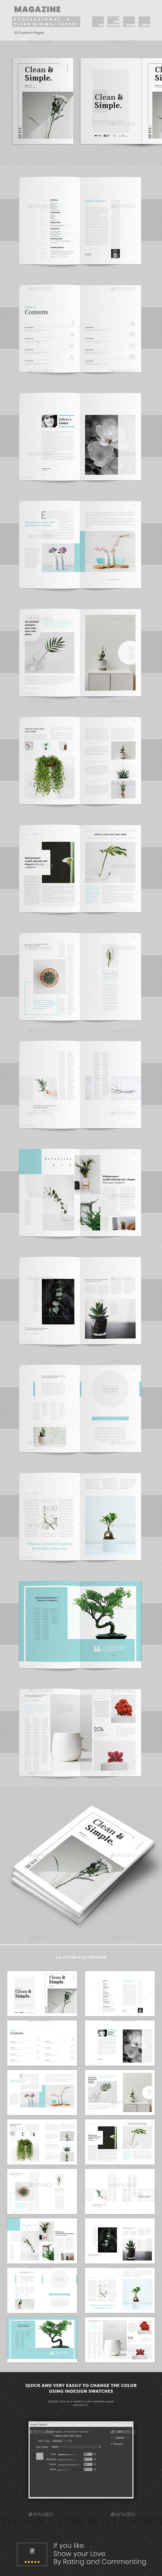 Clean and Simple Magazine Template - Magazines Print Templates